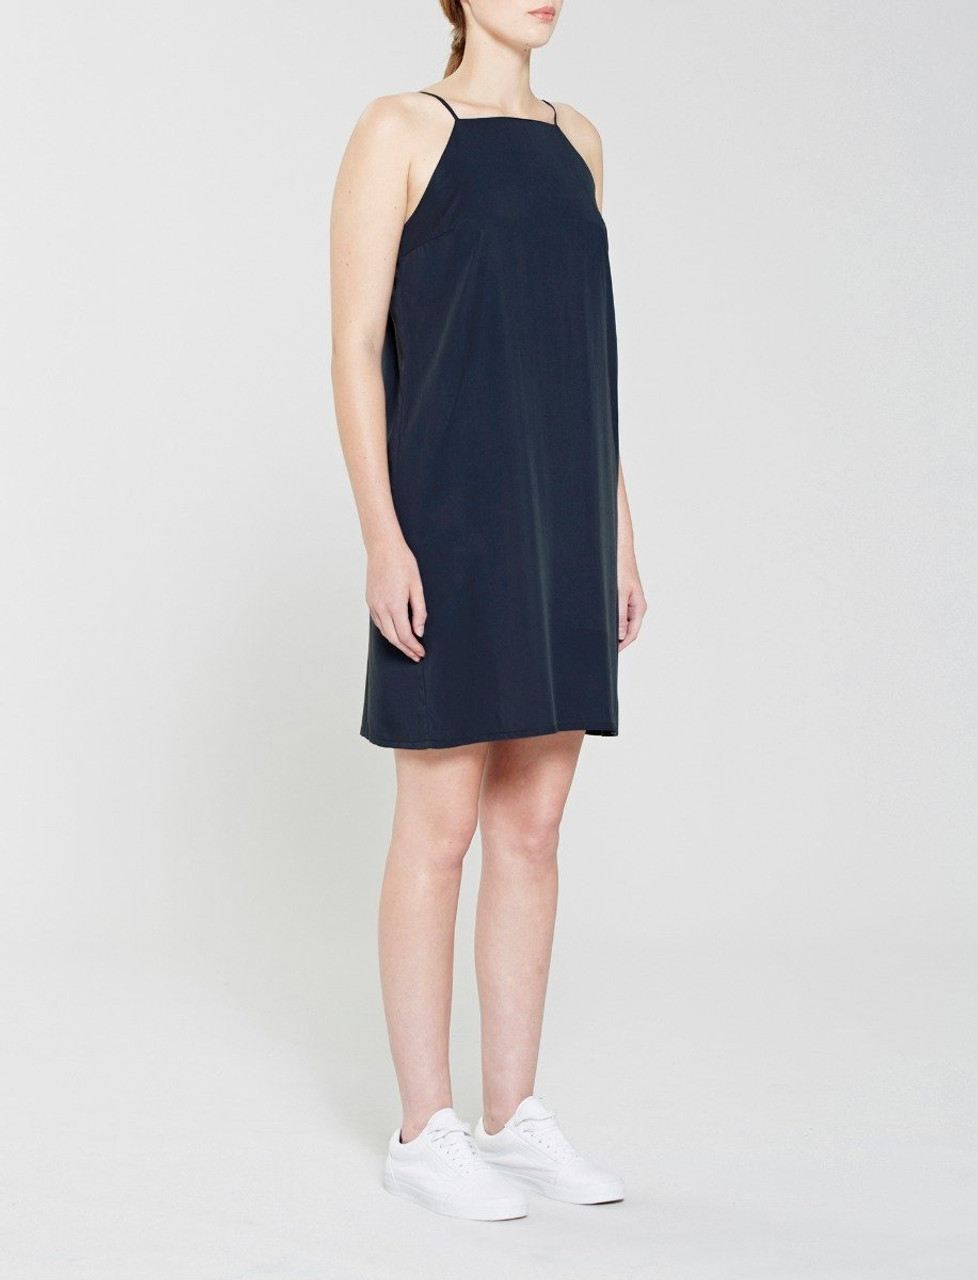 Navy Tencel Slip dress